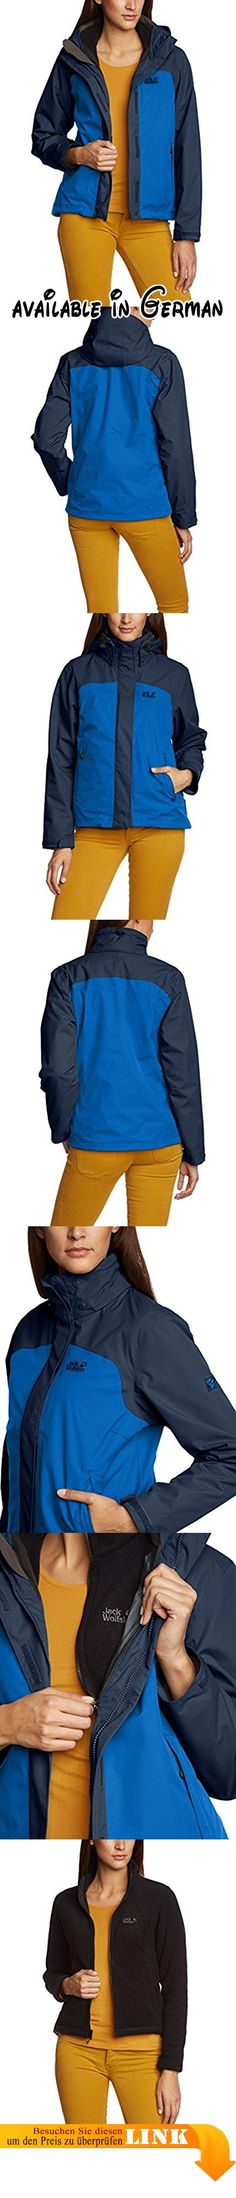 Jack Wolfskin Damen 3in1-Jacke Montero Jacket Women, Classic Blue, XL, 1106461-1127005. 3-in-1-Wanderjacke. wasserdicht, winddicht. atmungsaktiv. sehr robust. kurzer Schnitt #Sports #SPORTING_GOODS